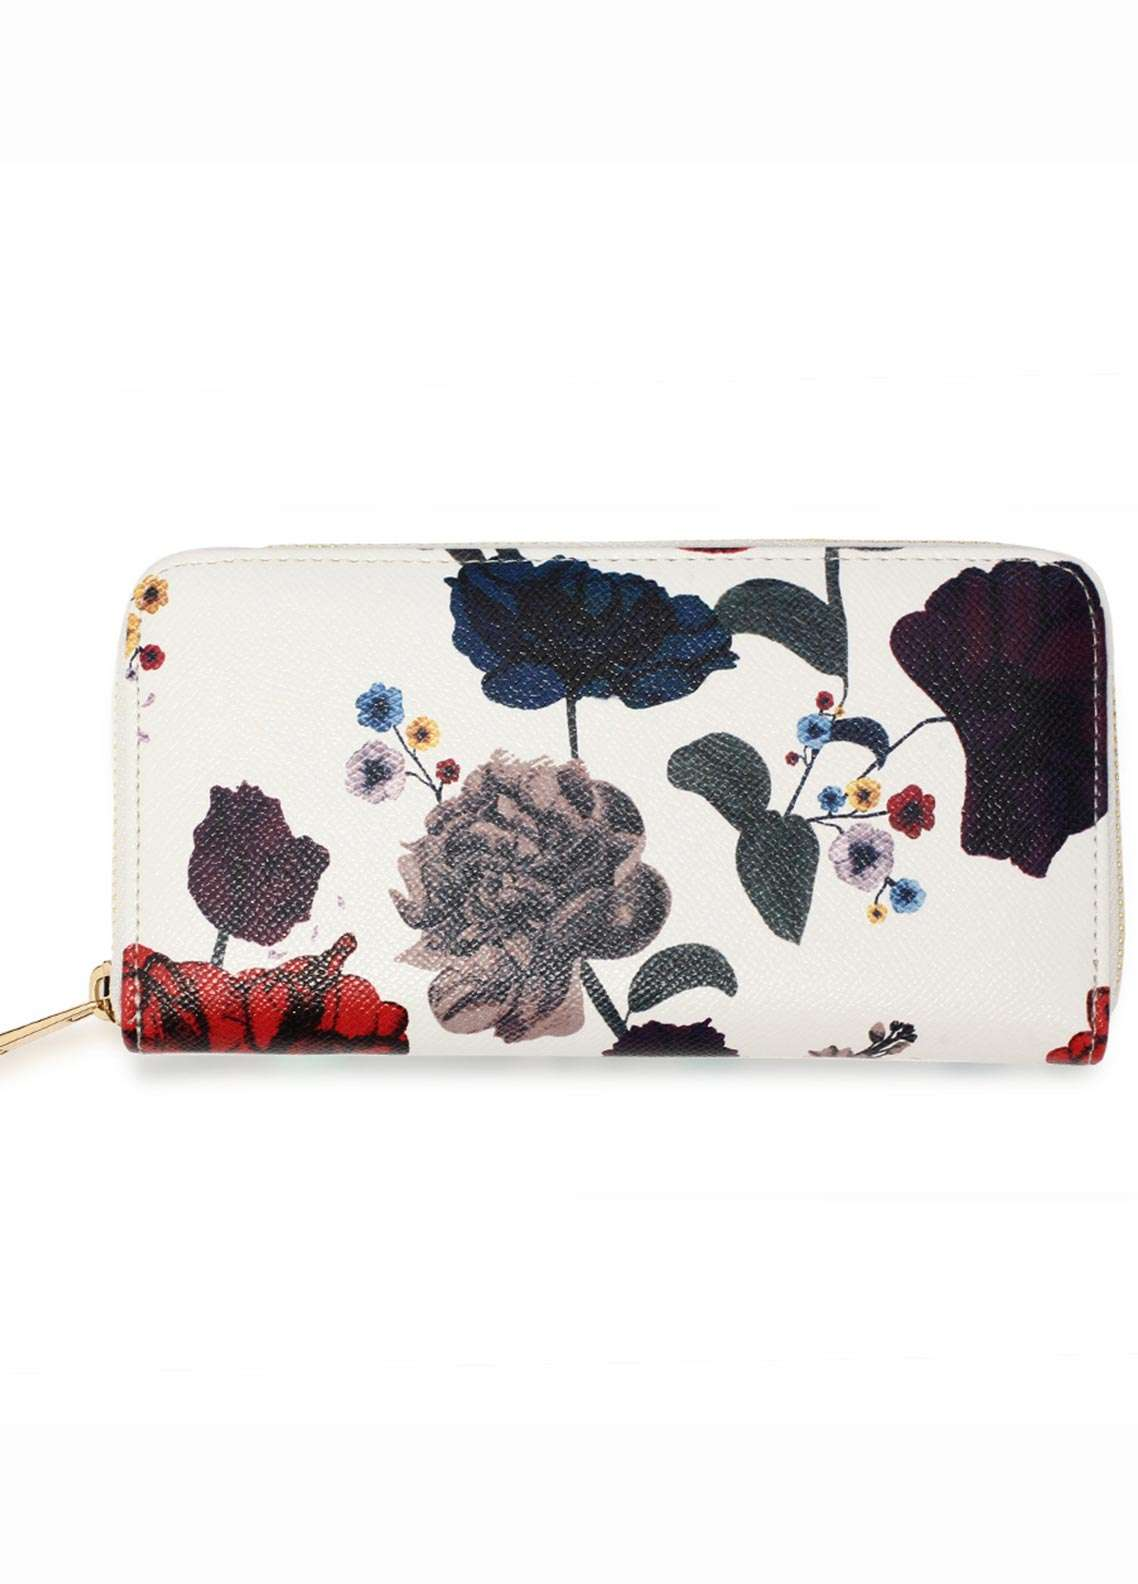 Anna Grace London Faux Leather Wallet for Women Multi with Smooth Texture|Grainy